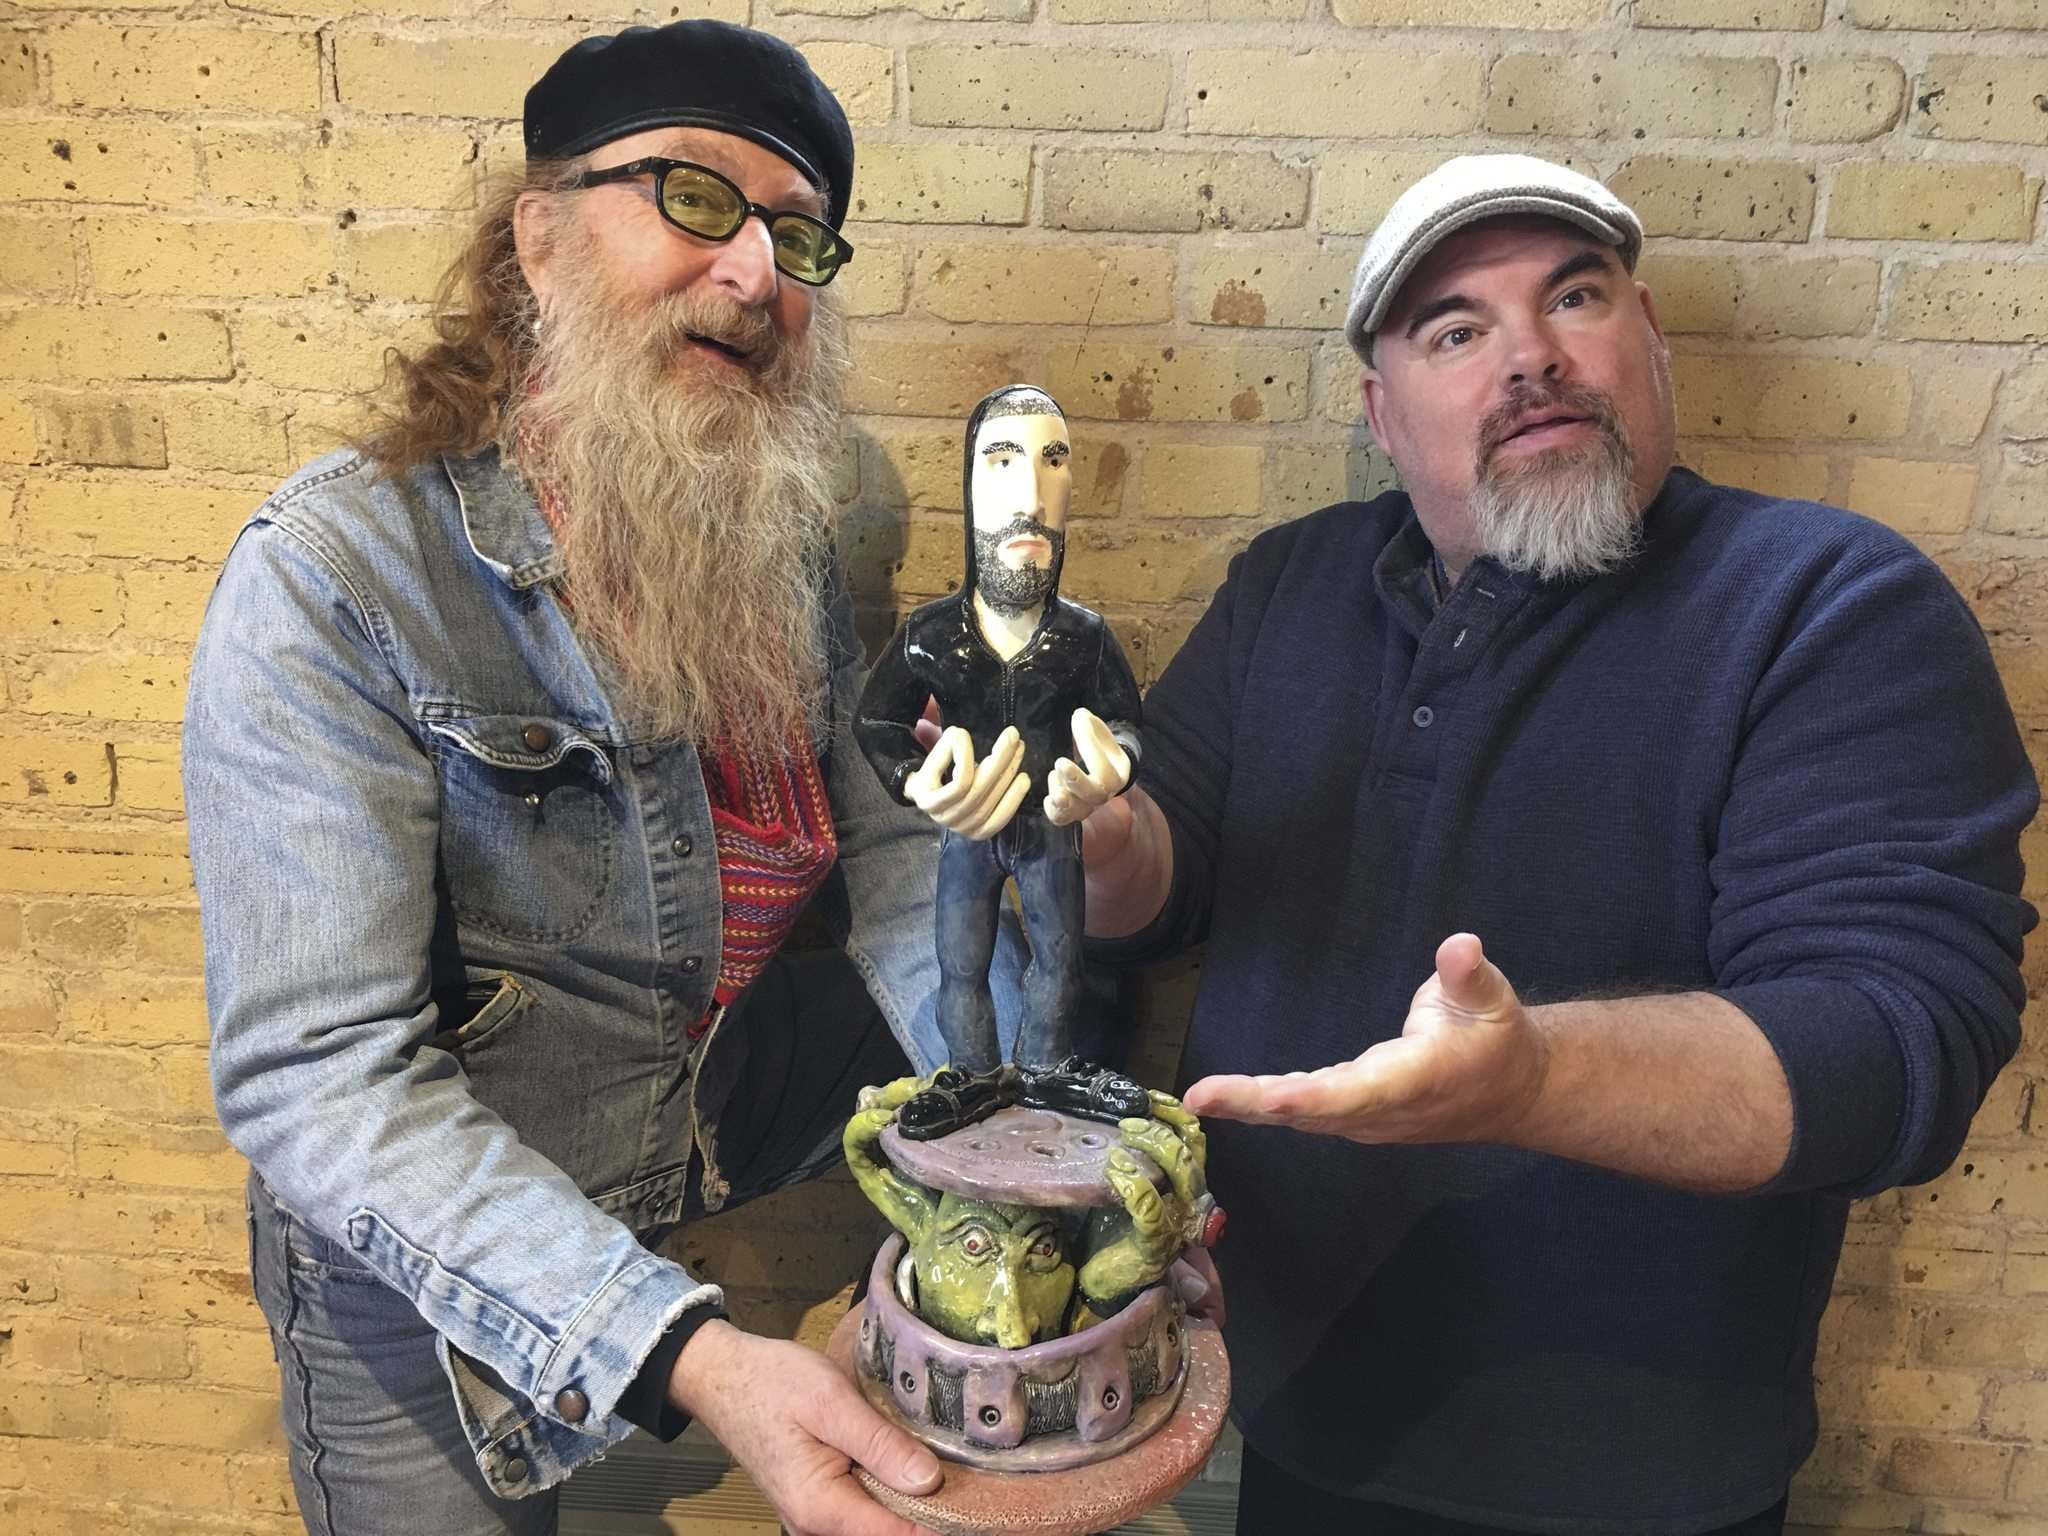 photos SUPPLIED</p><p>Artist Jordan Van Sewell (left) and comedian Big Daddy Tazz show off Van Sewell's Darcy Oake sculpture that will be auctioned off.</p>